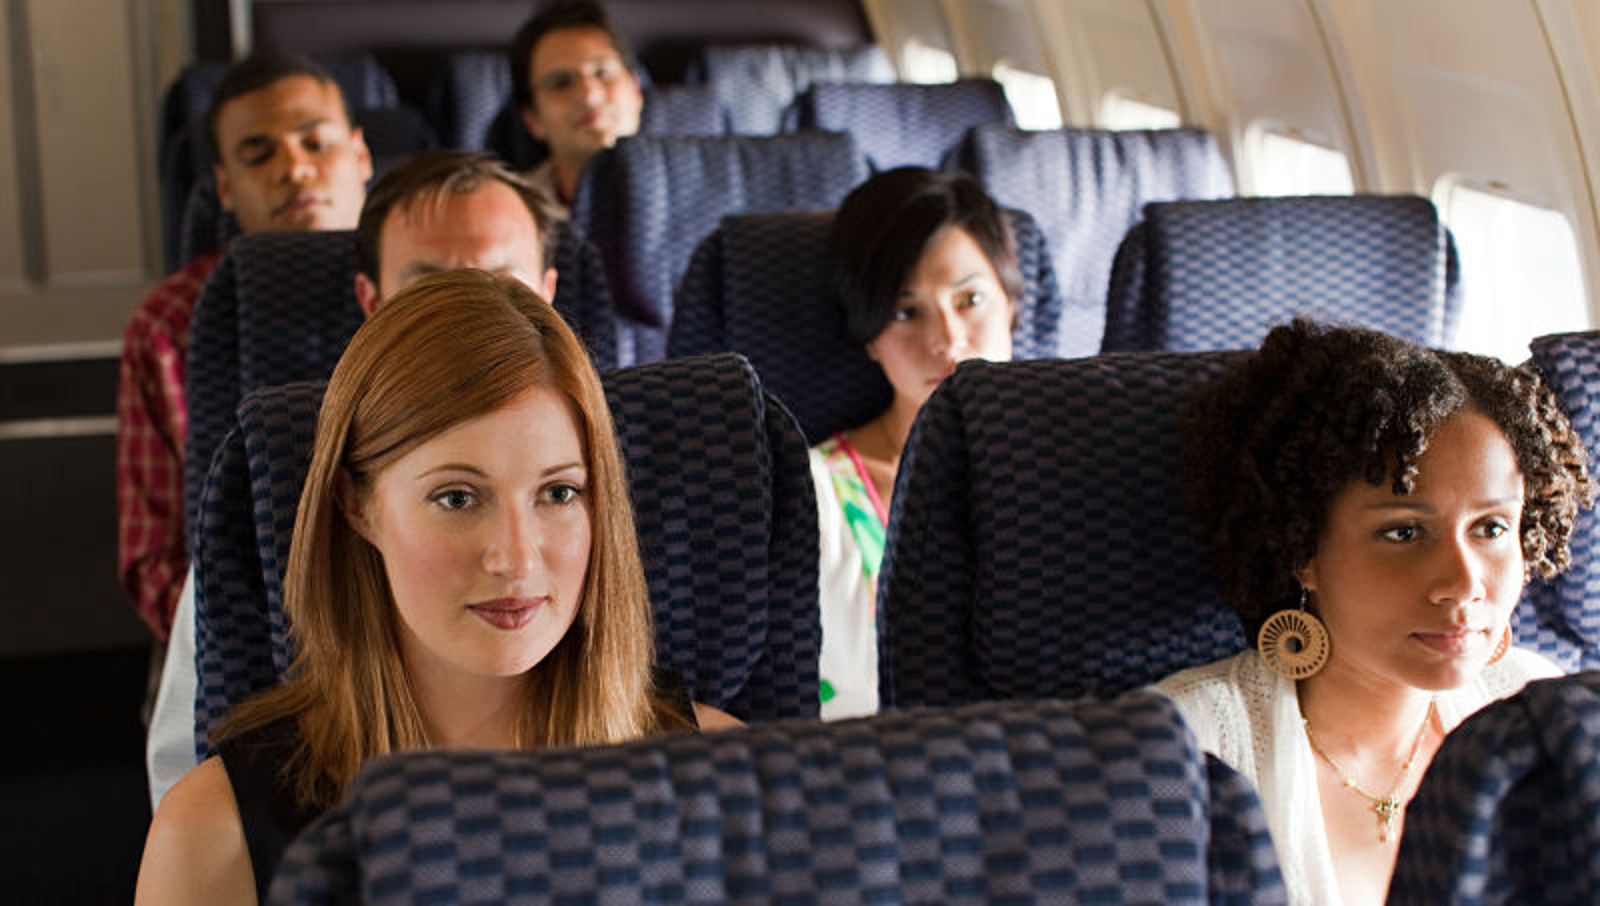 American Airlines Announces It Will No Longer Try To Match Seatmates By Interests